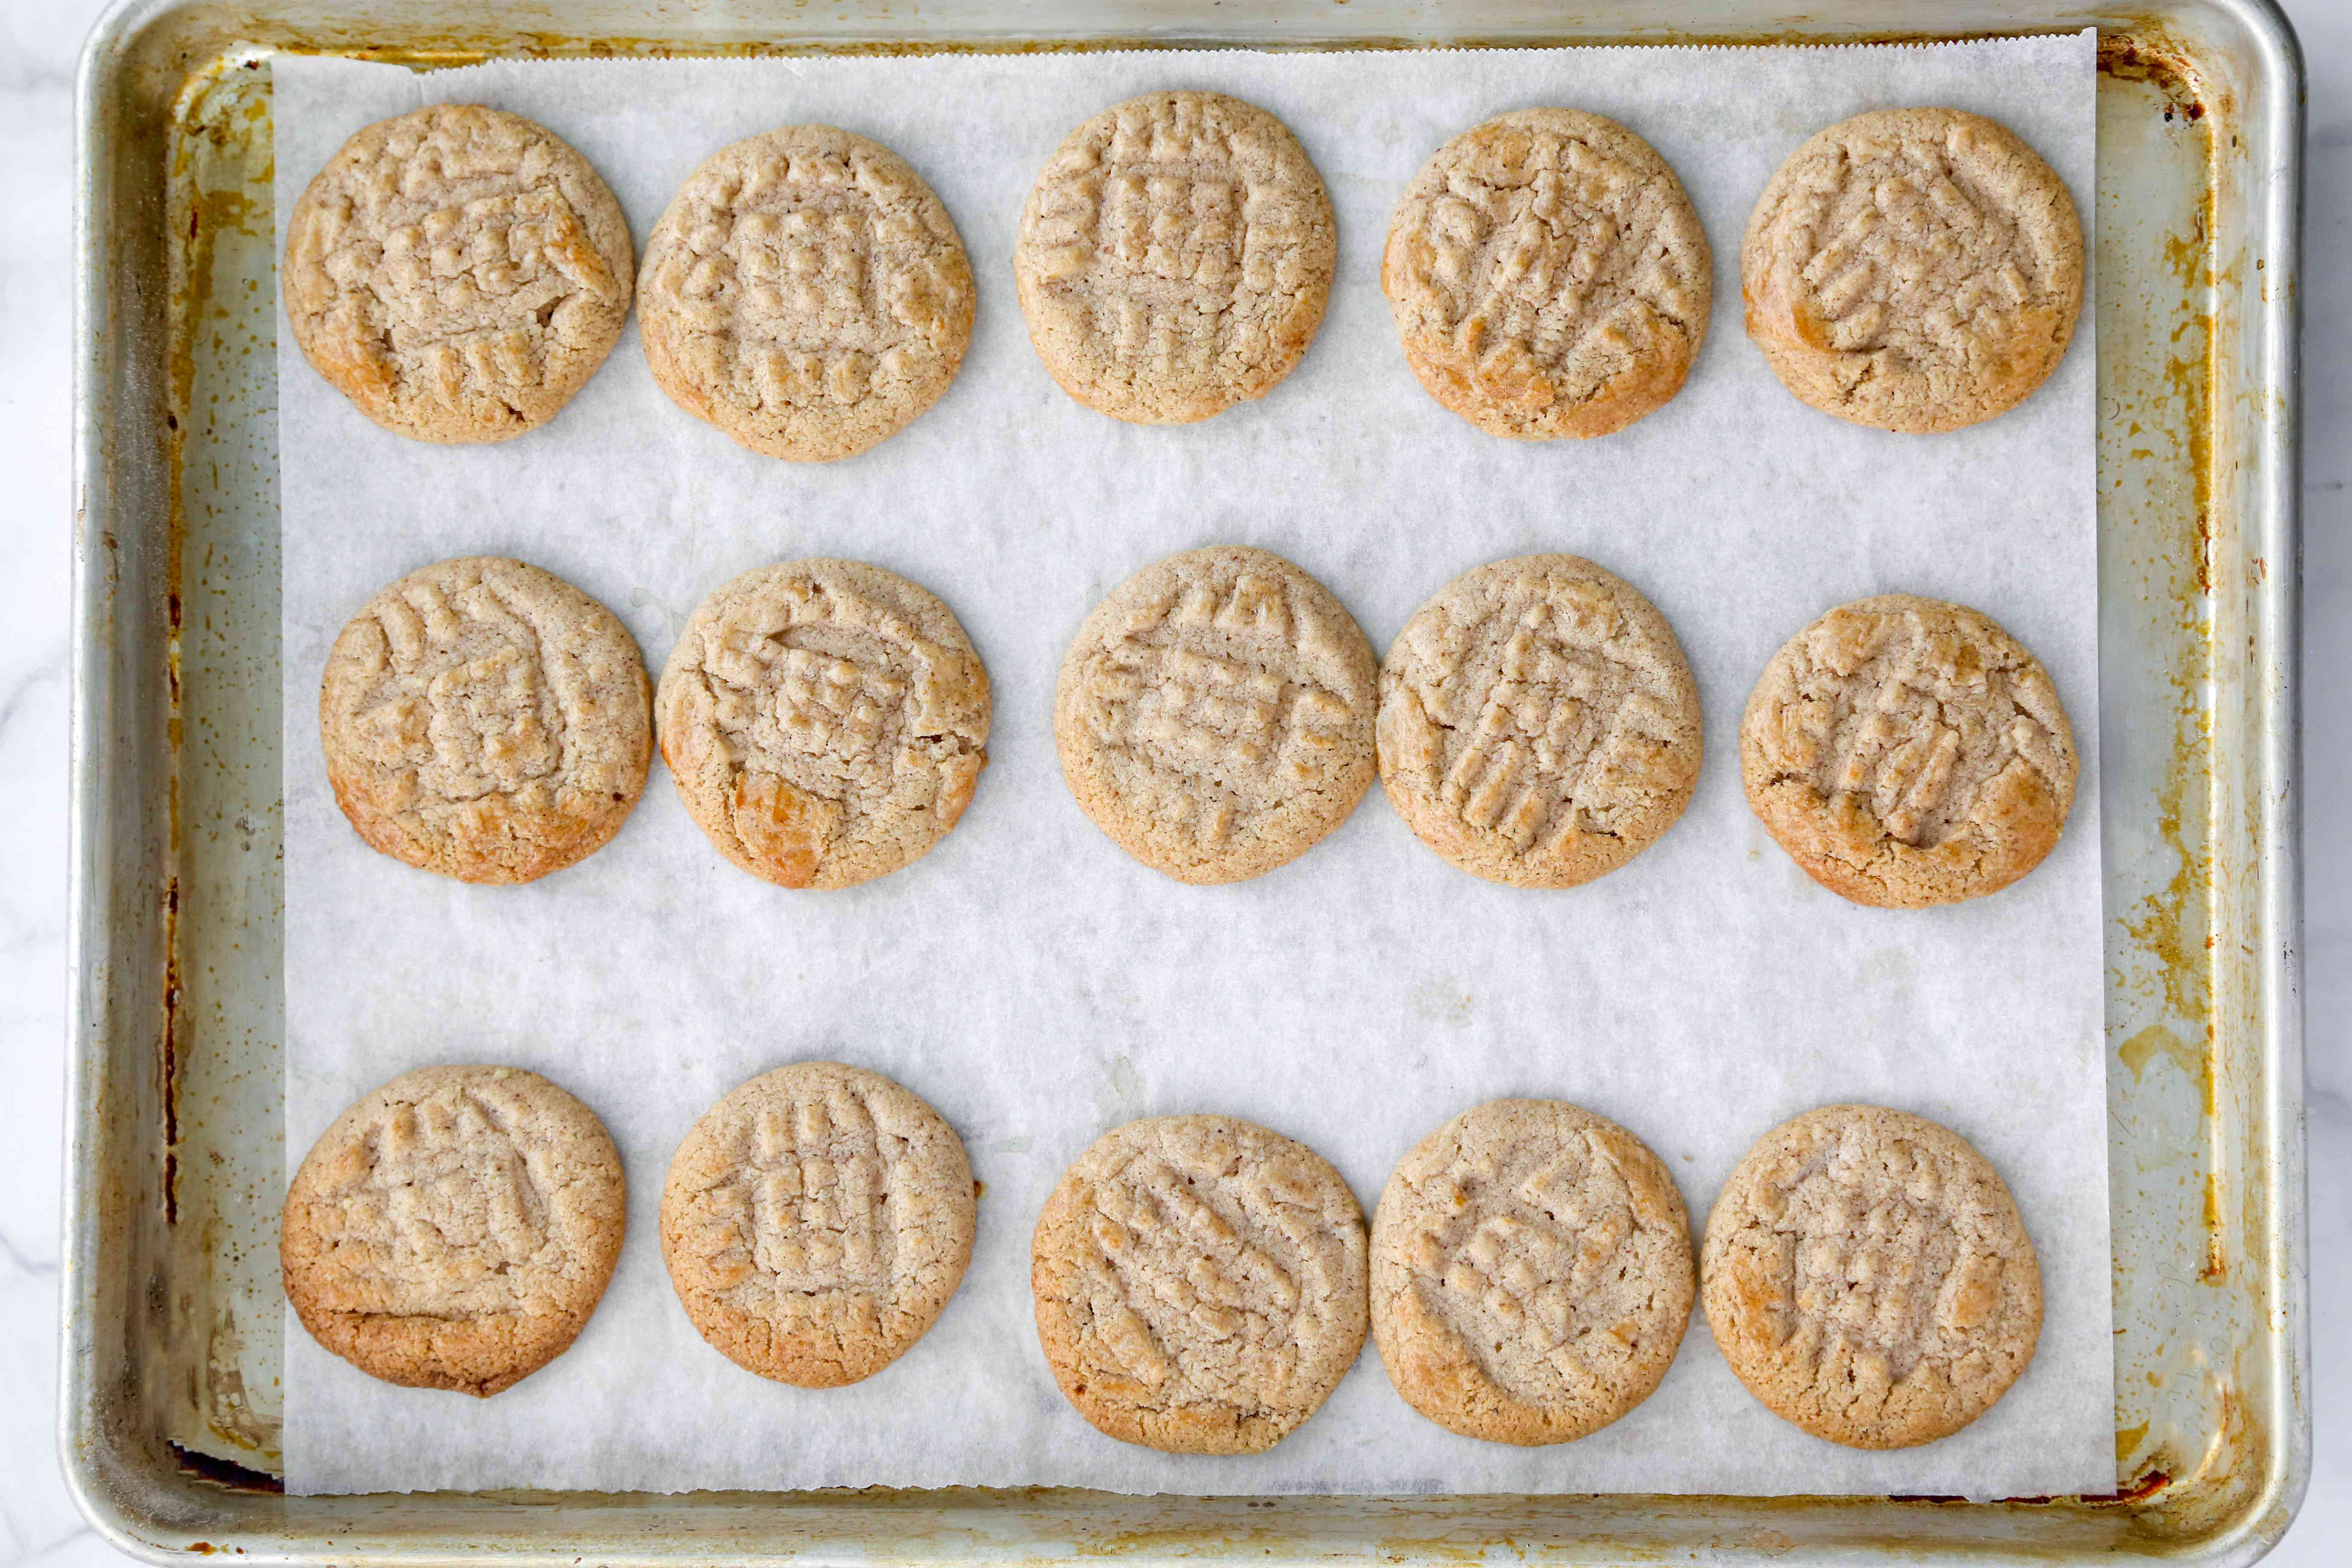 baked cookies on a baking sheet